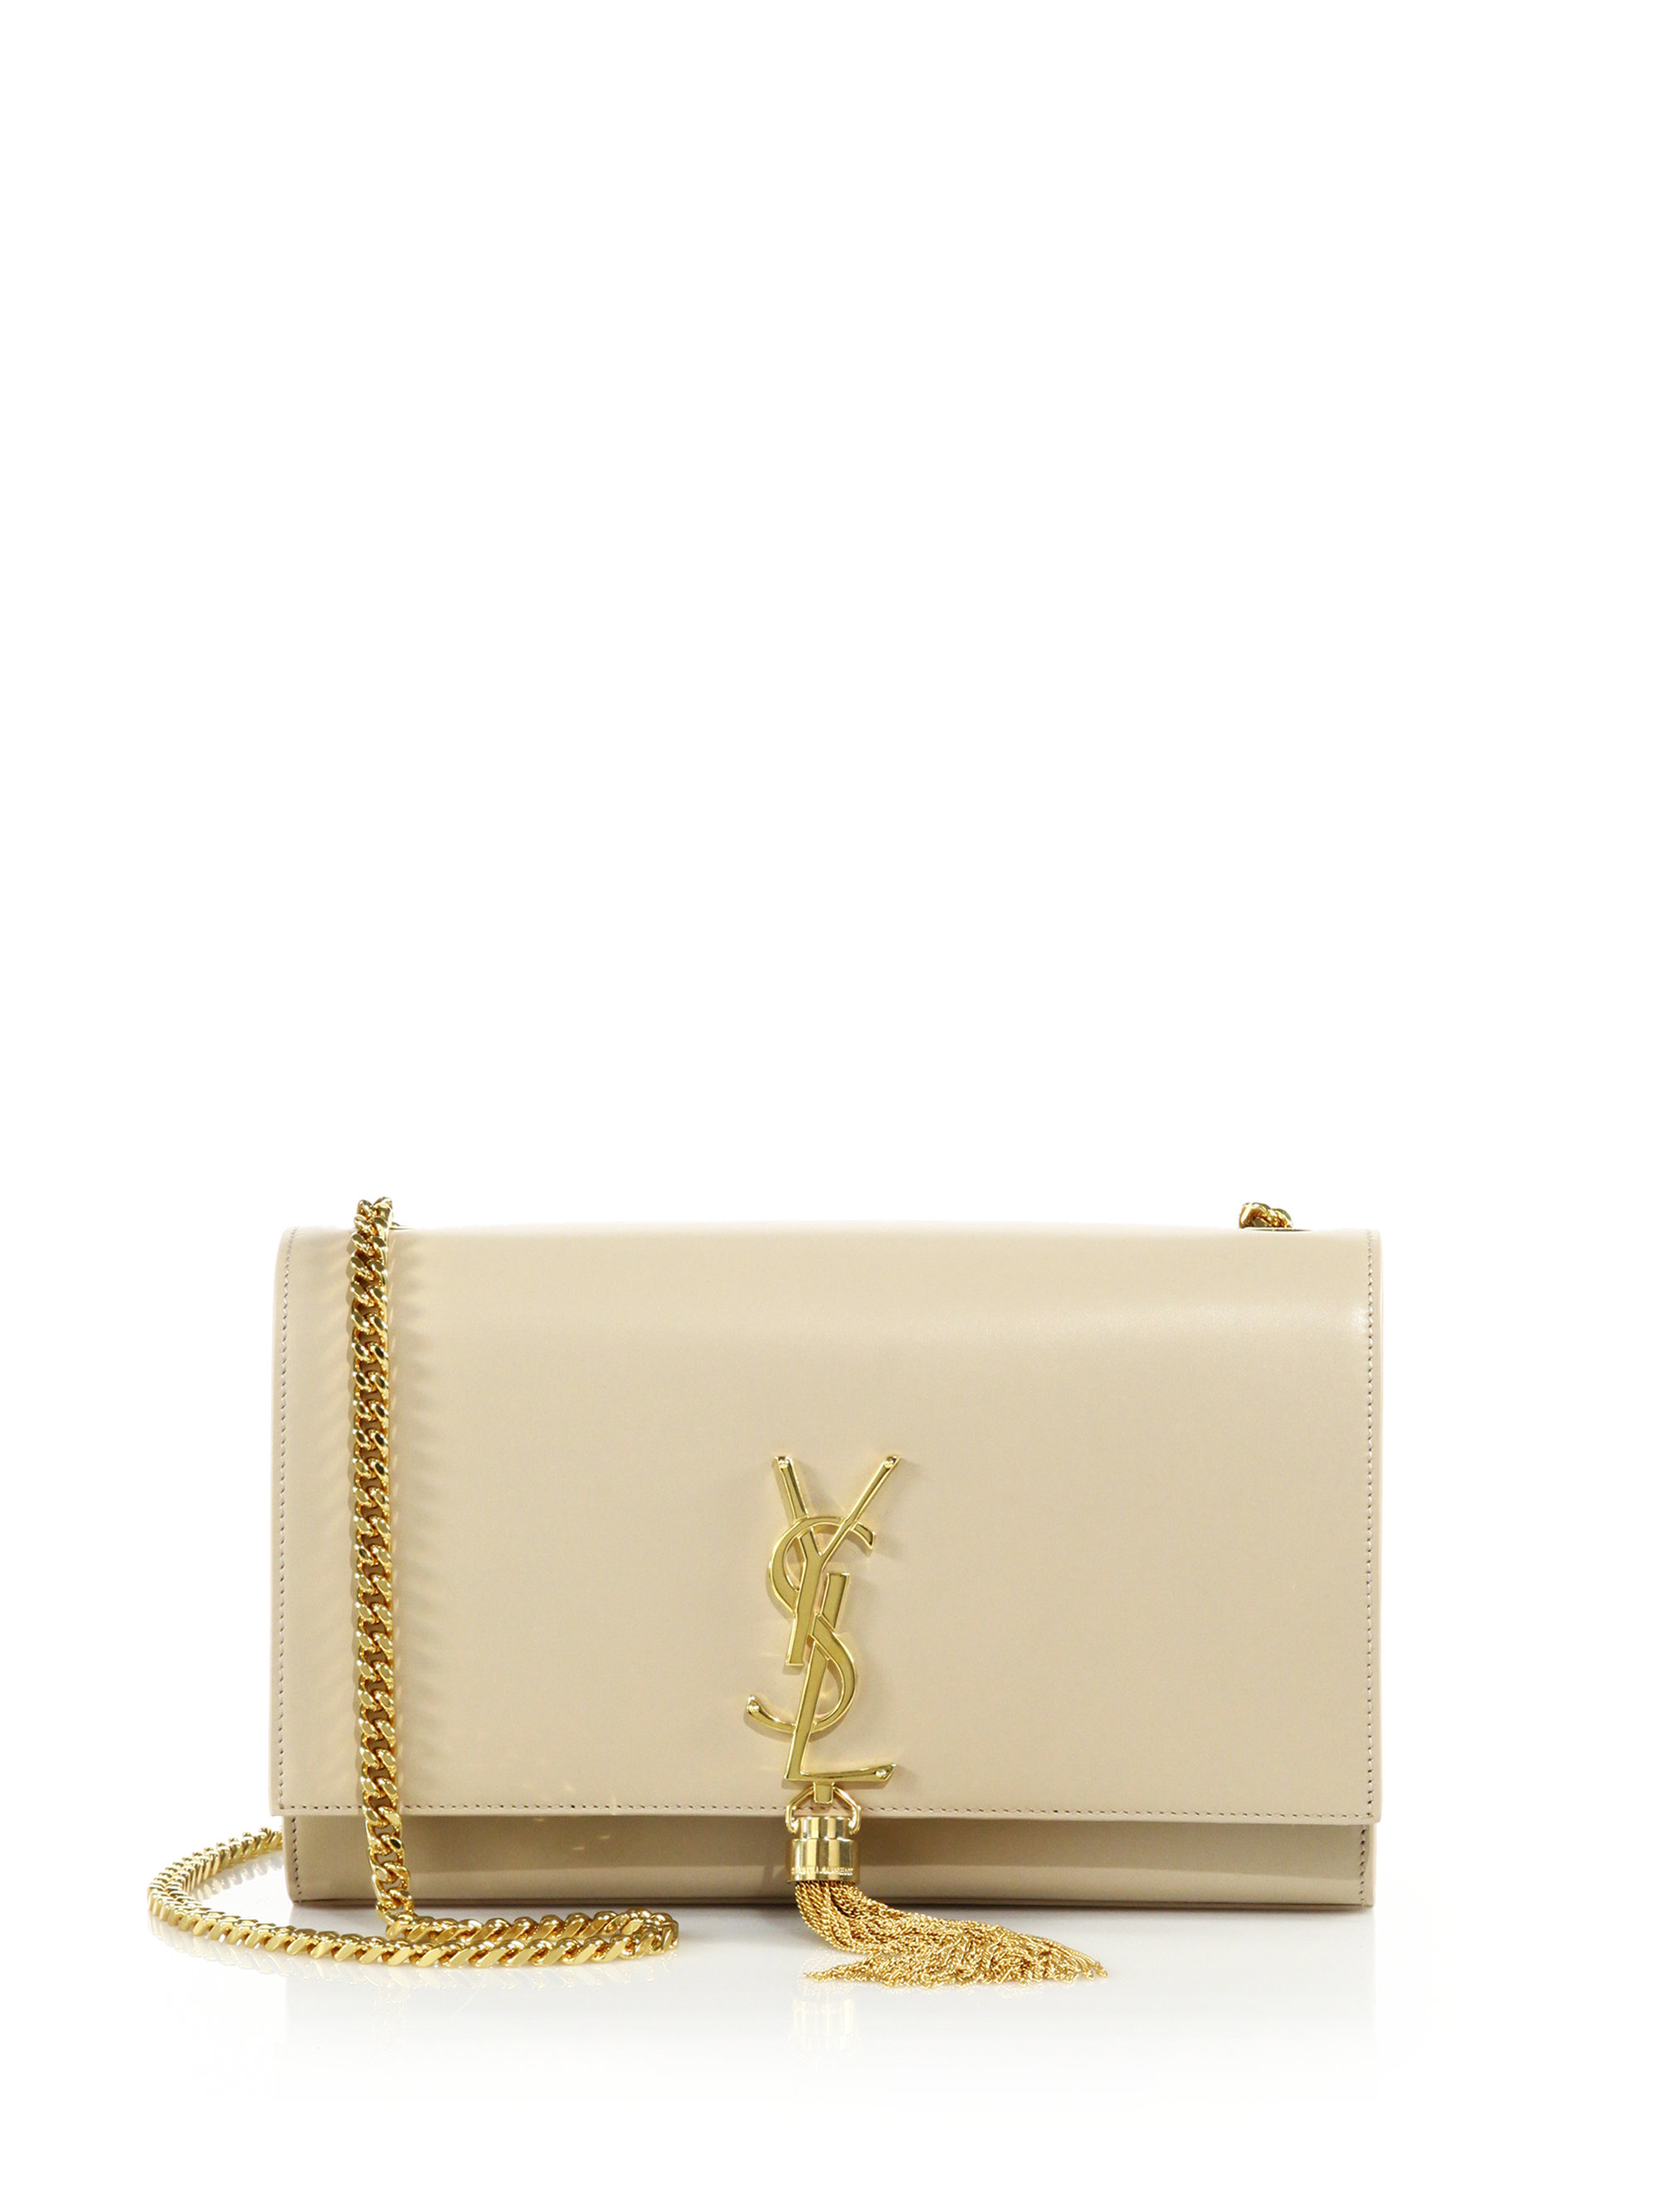 yves saint laurent prices - monogram medium chain shoulder bag, fuchsia